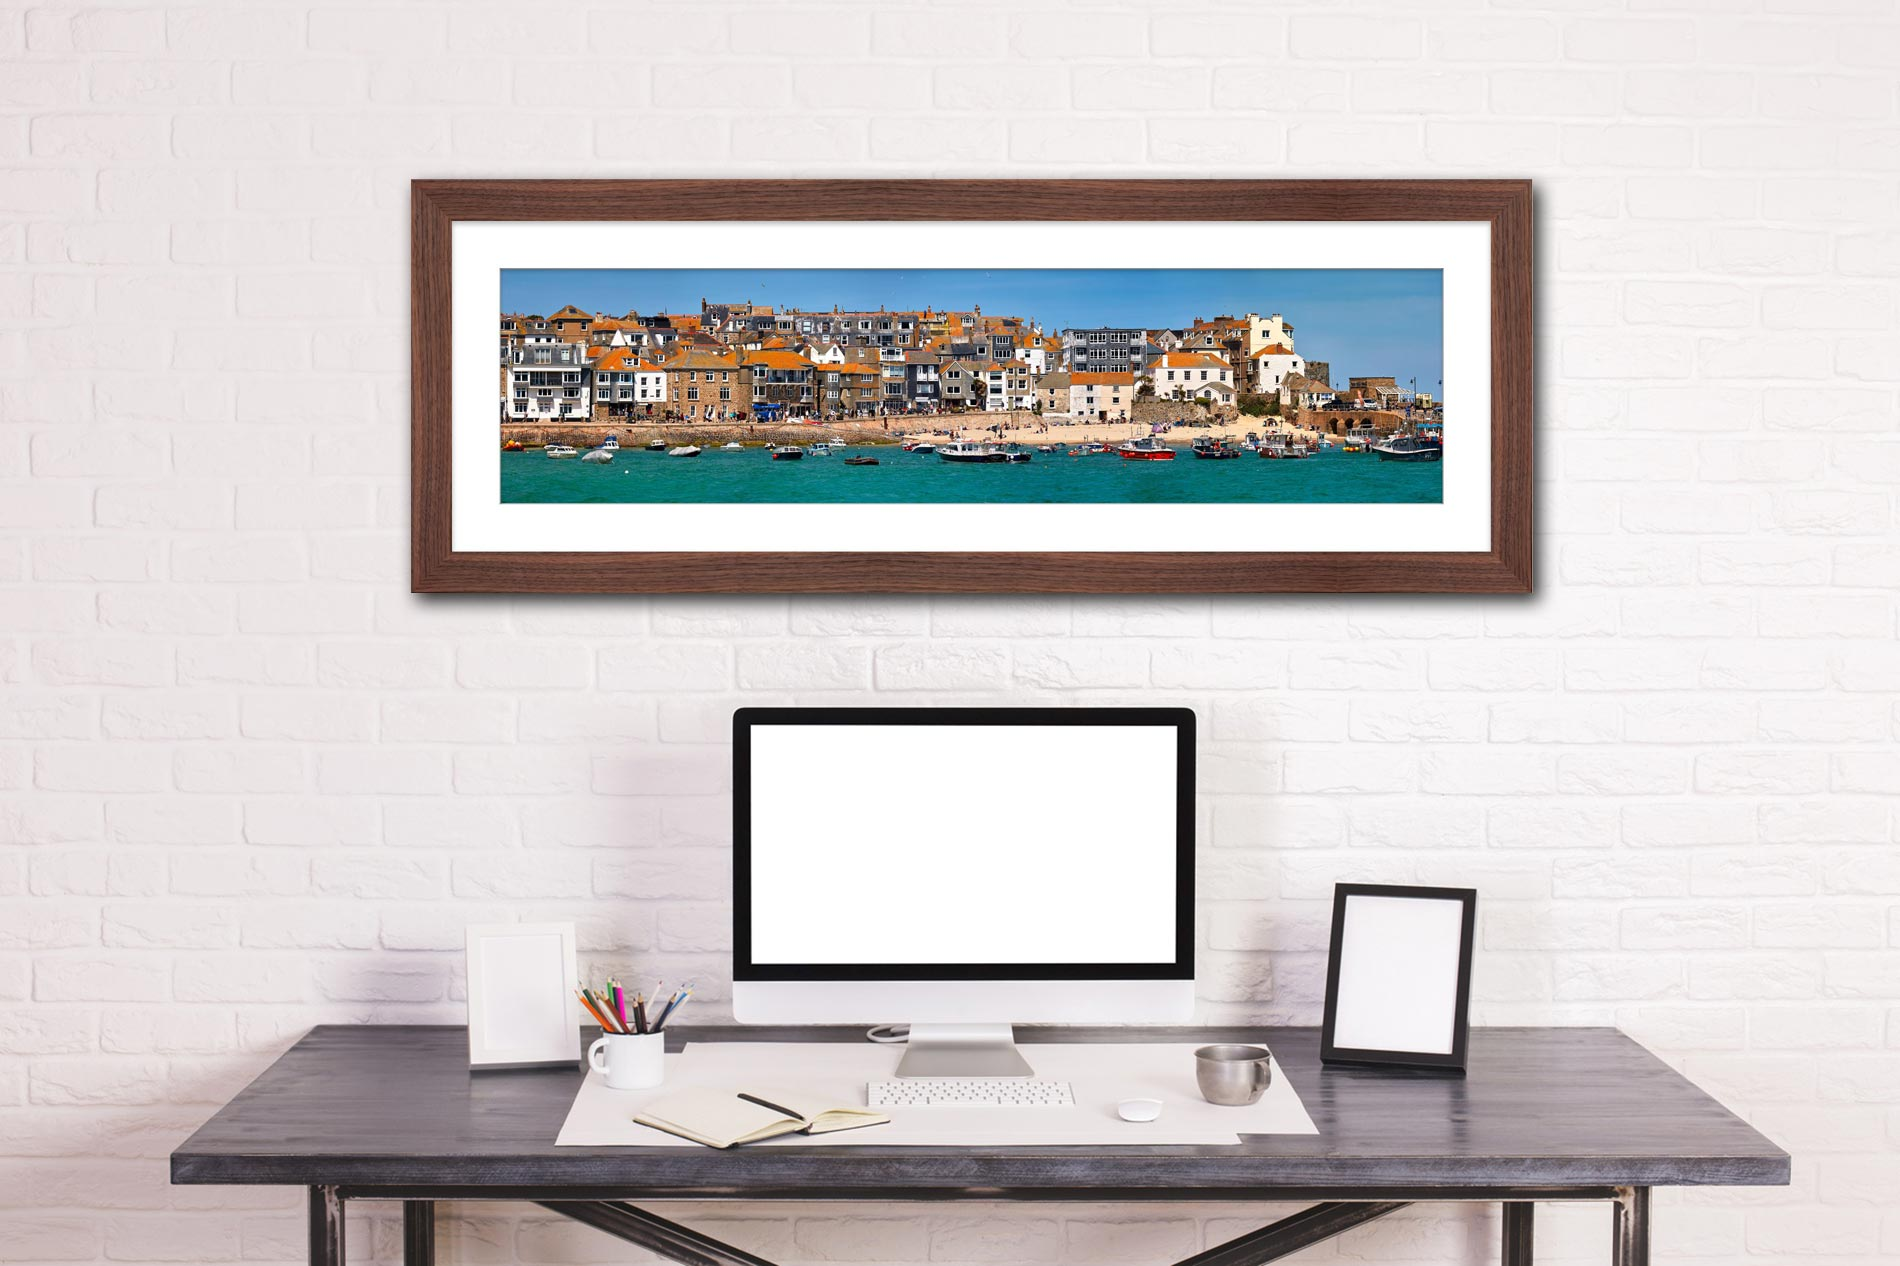 Wharf Road and Downalong - Framed Print with Mount on Wall